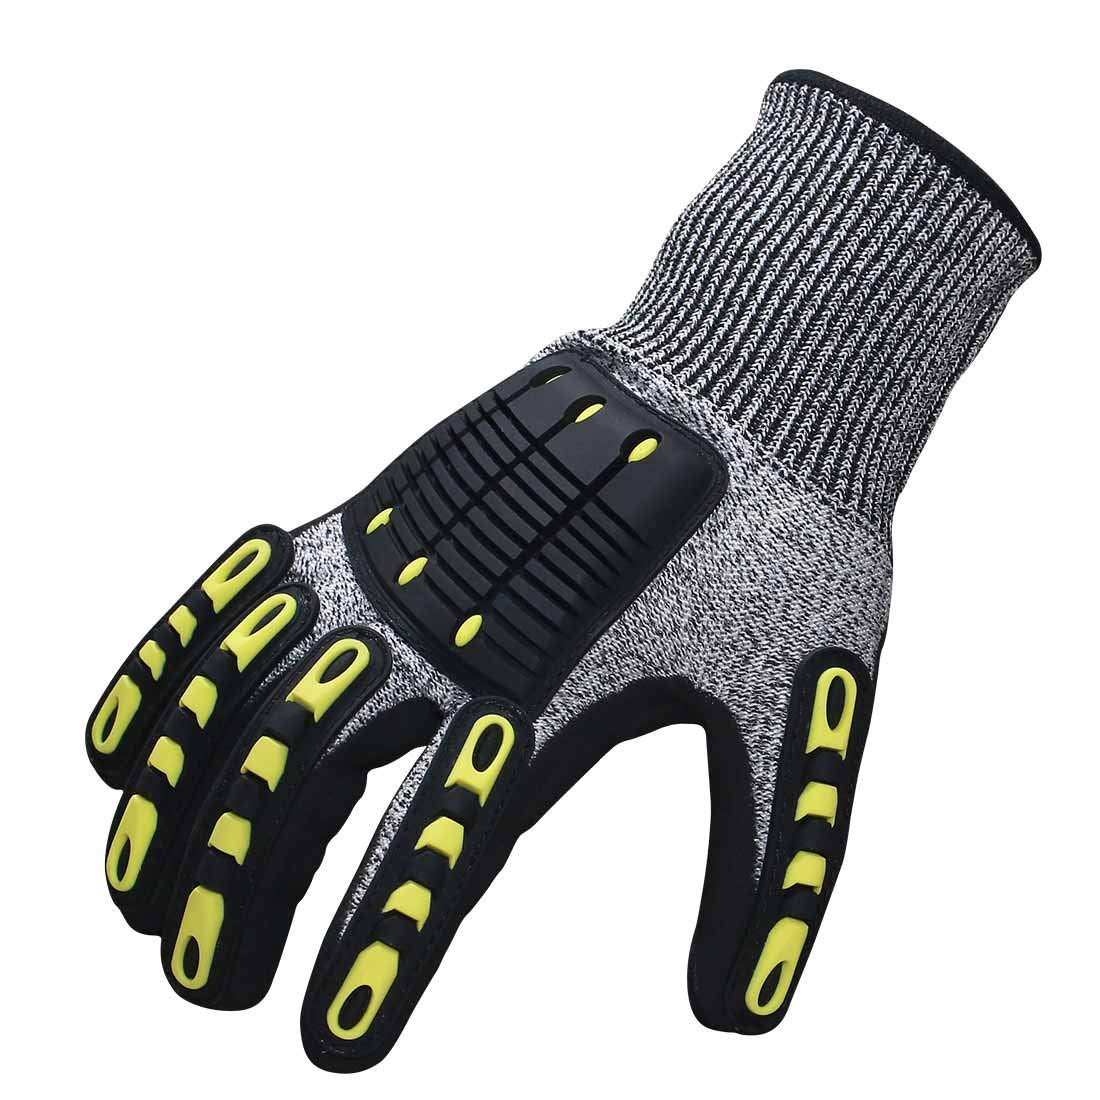 Impact Reducing Safety Gloves, Vibration & Abrasion & Cut Resistant, Ideal for Heavy Duty Safety Work like Mechanic, Garden Construction, Car Repairing Industrial, 1 Pair by KARRISM 1